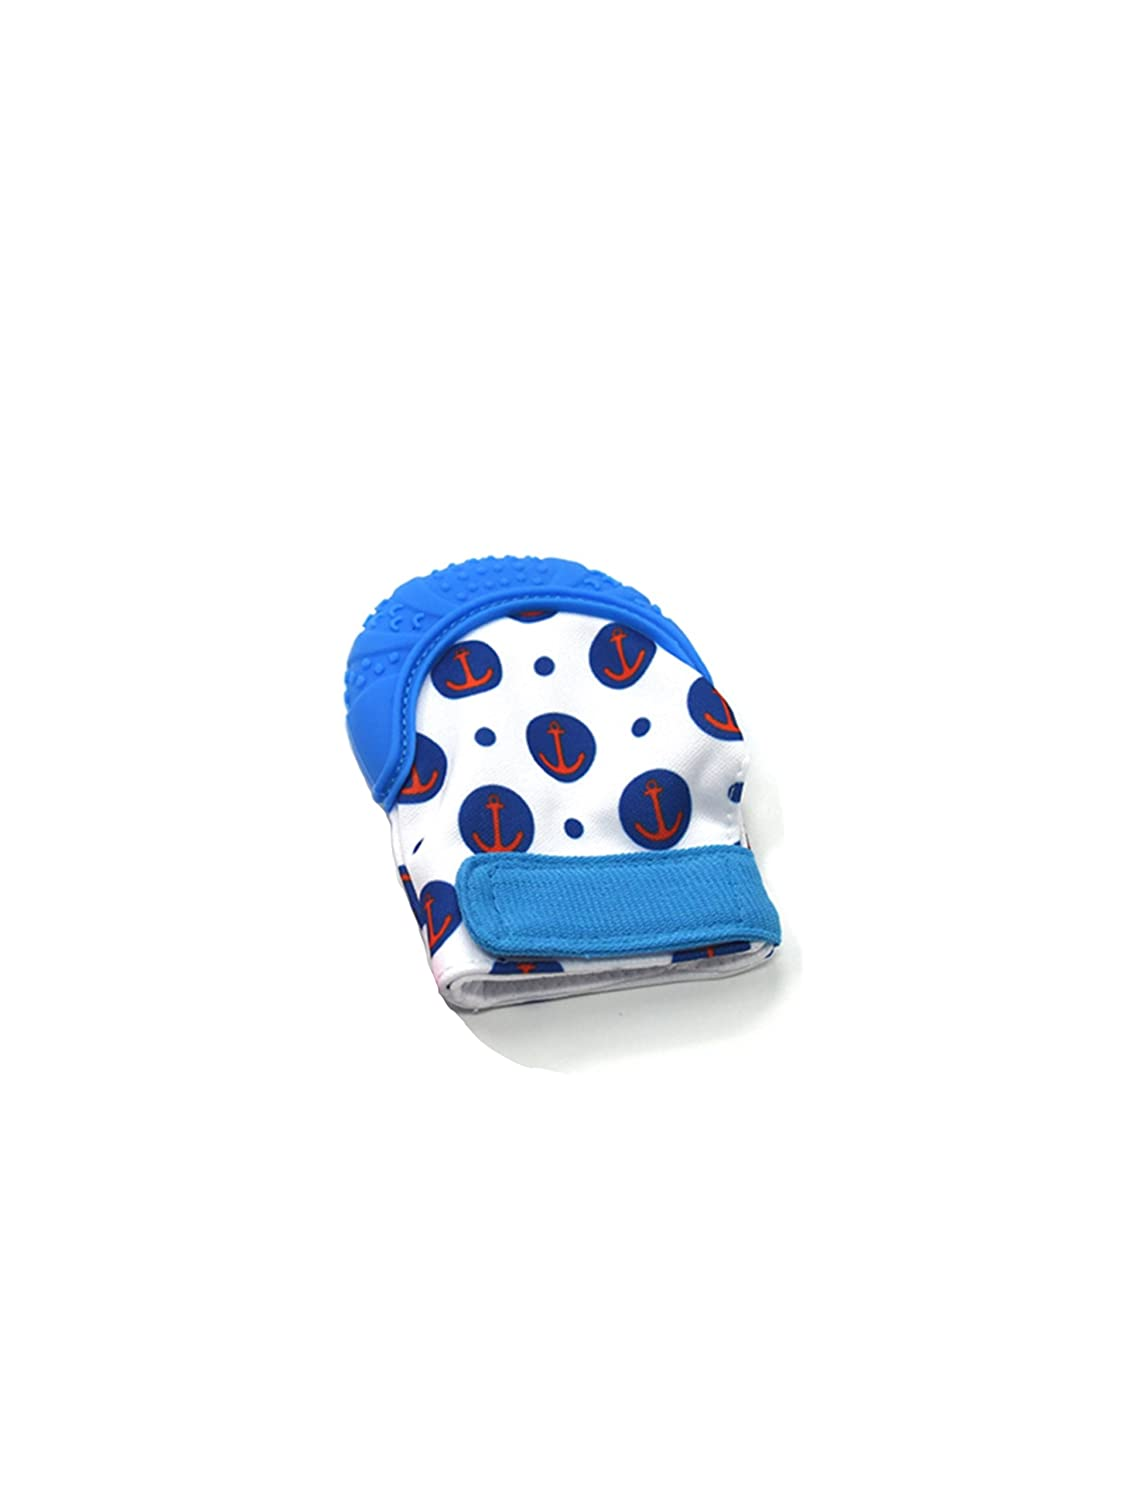 Cardboard Castle Ltd Baby Silicone Teething Munch Mitten Blue Blue Anchor Pattern Teether Glove for Toddlers and Infants BPA Free